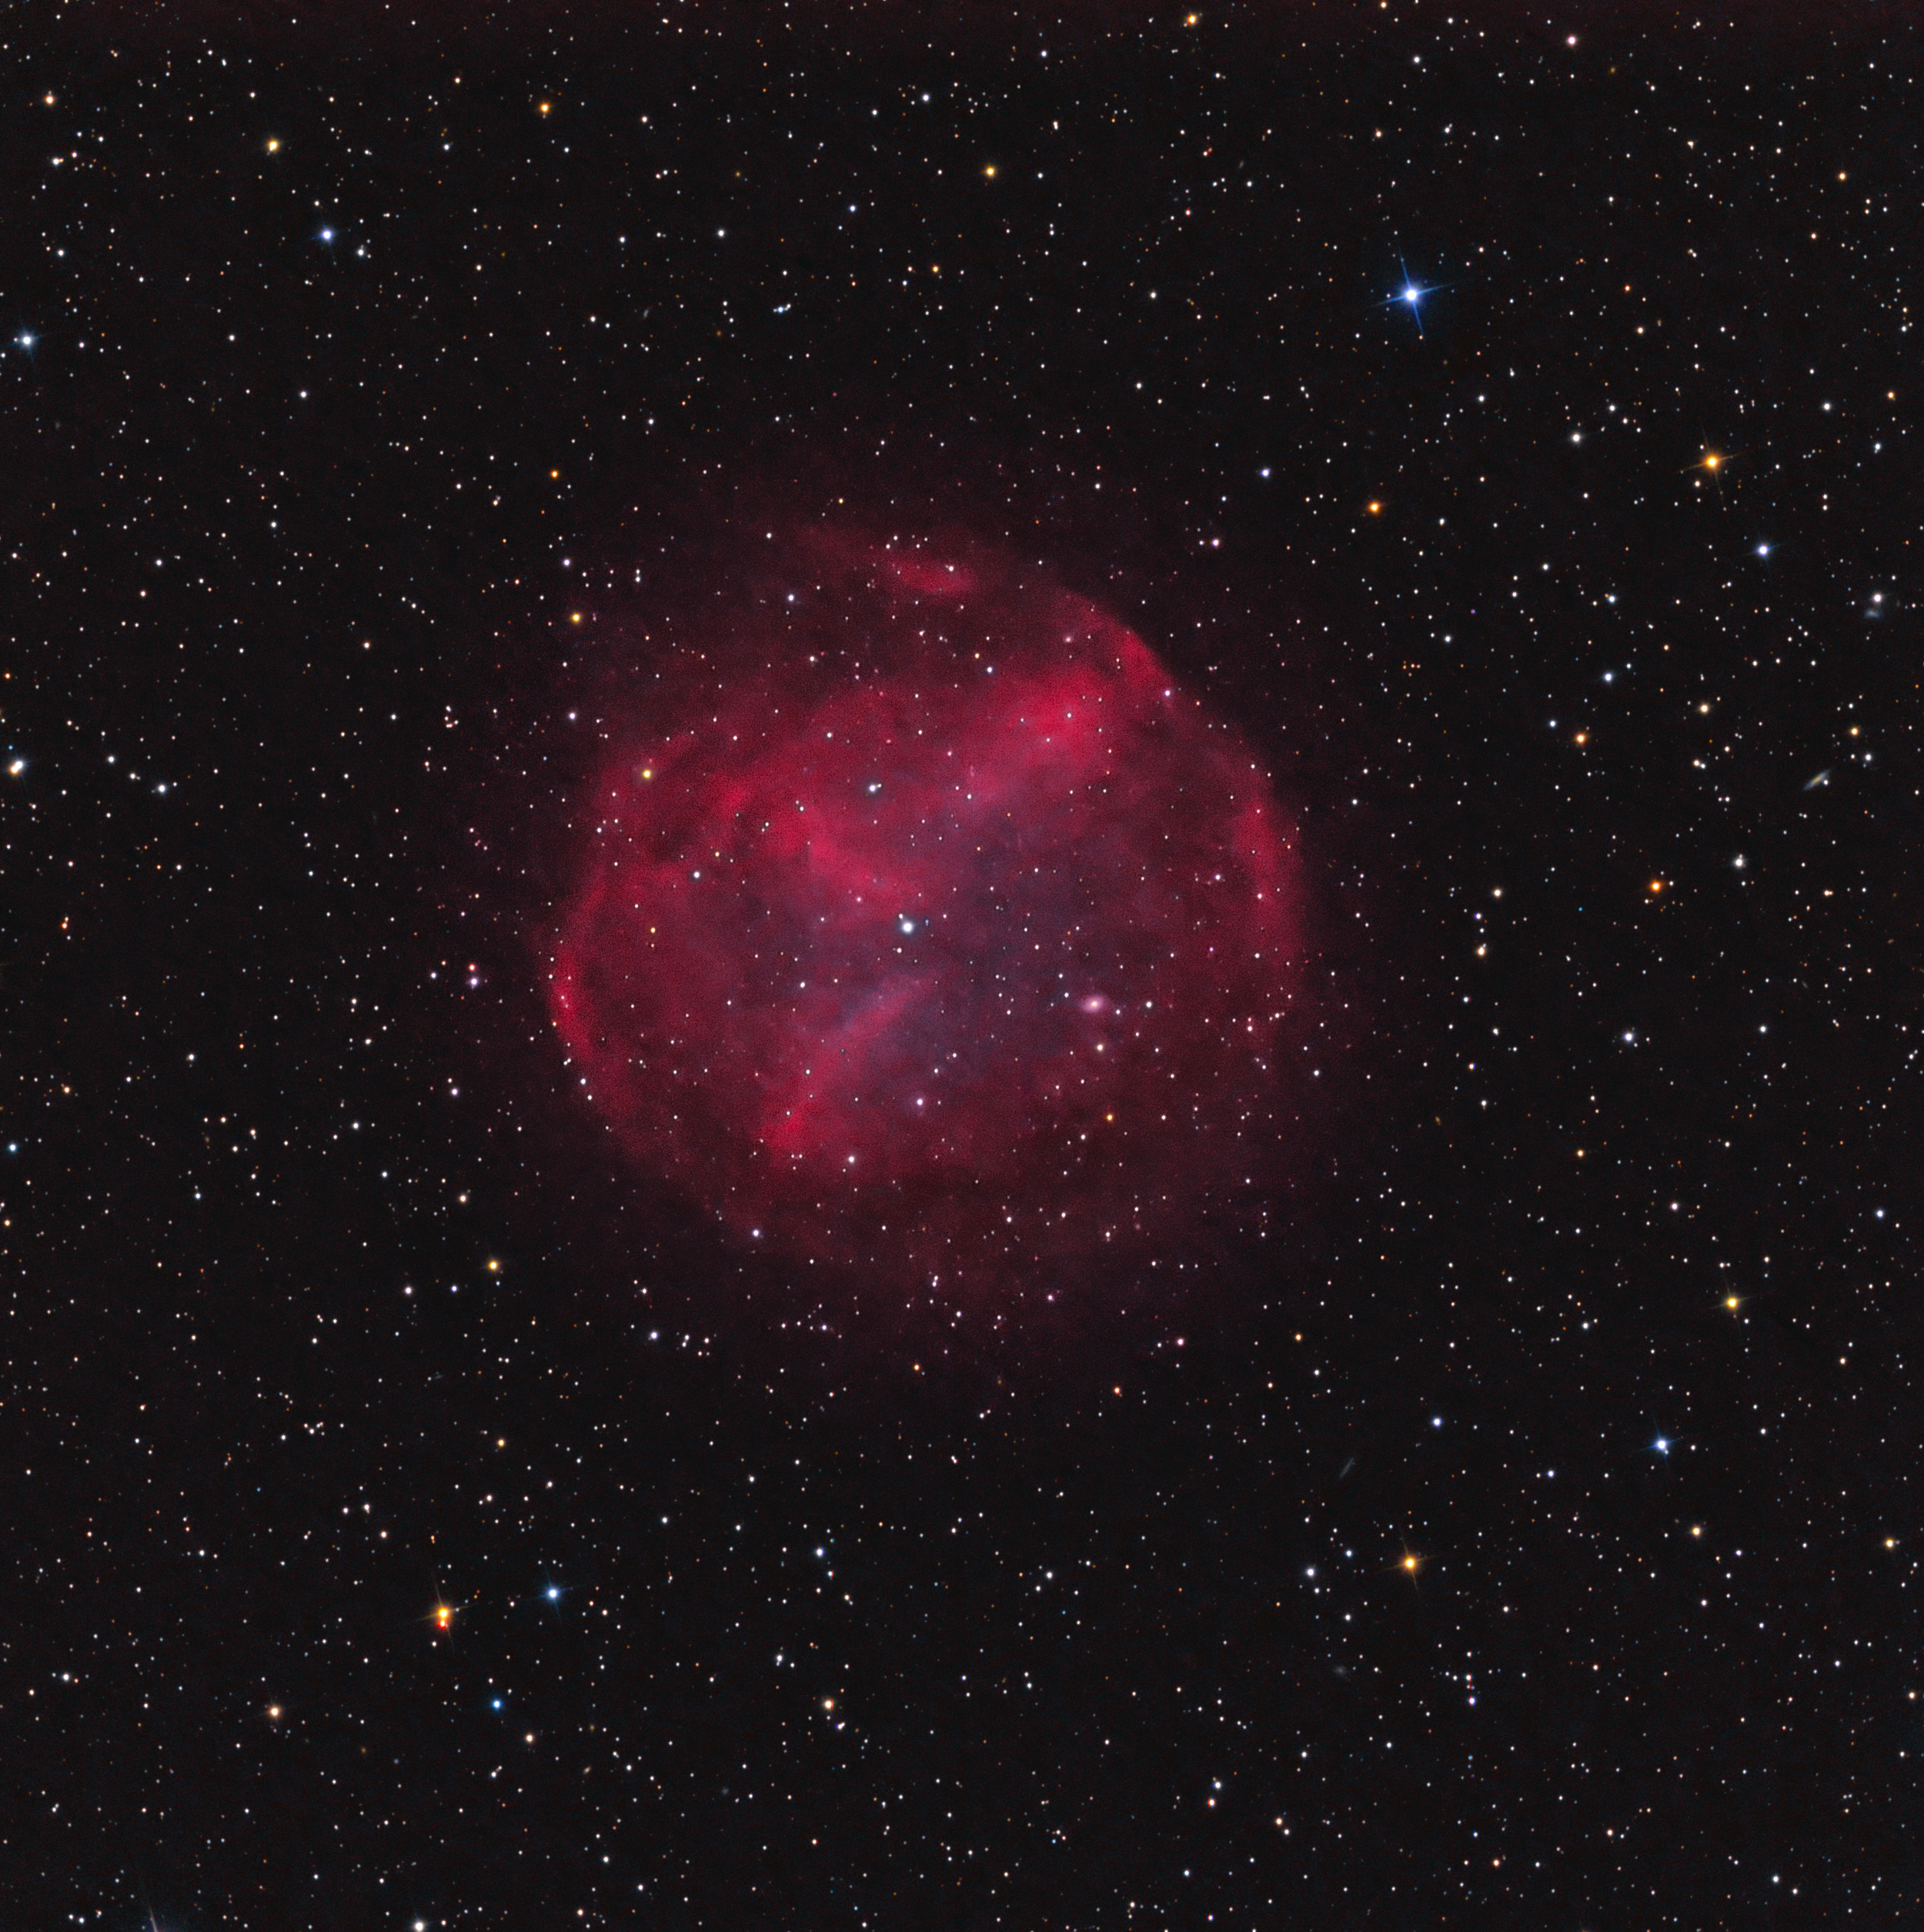 Abell 74 in Vulpecula